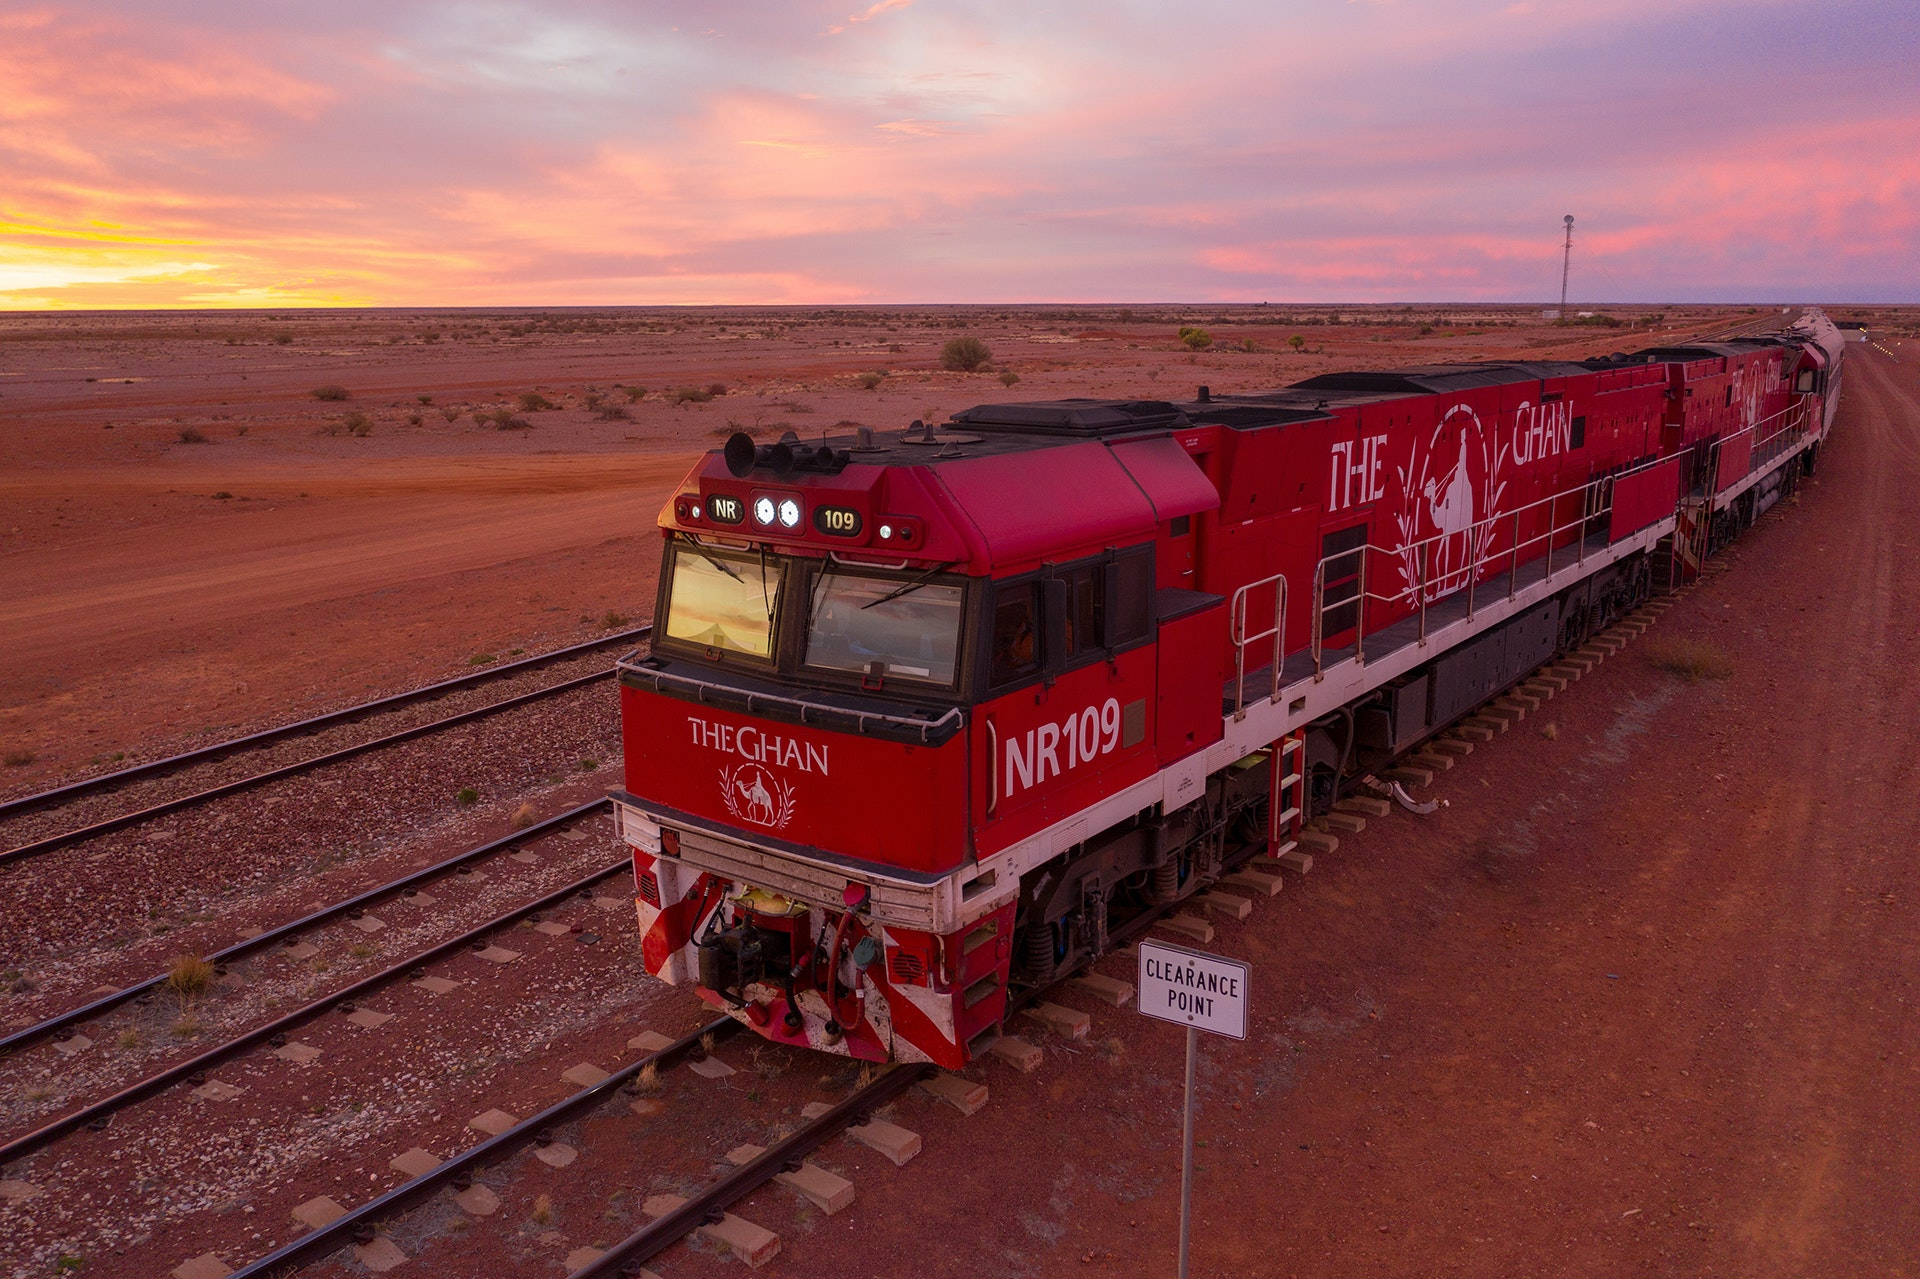 Journey Beyond Rail Expeditions - The Ghan, Indian Pacific